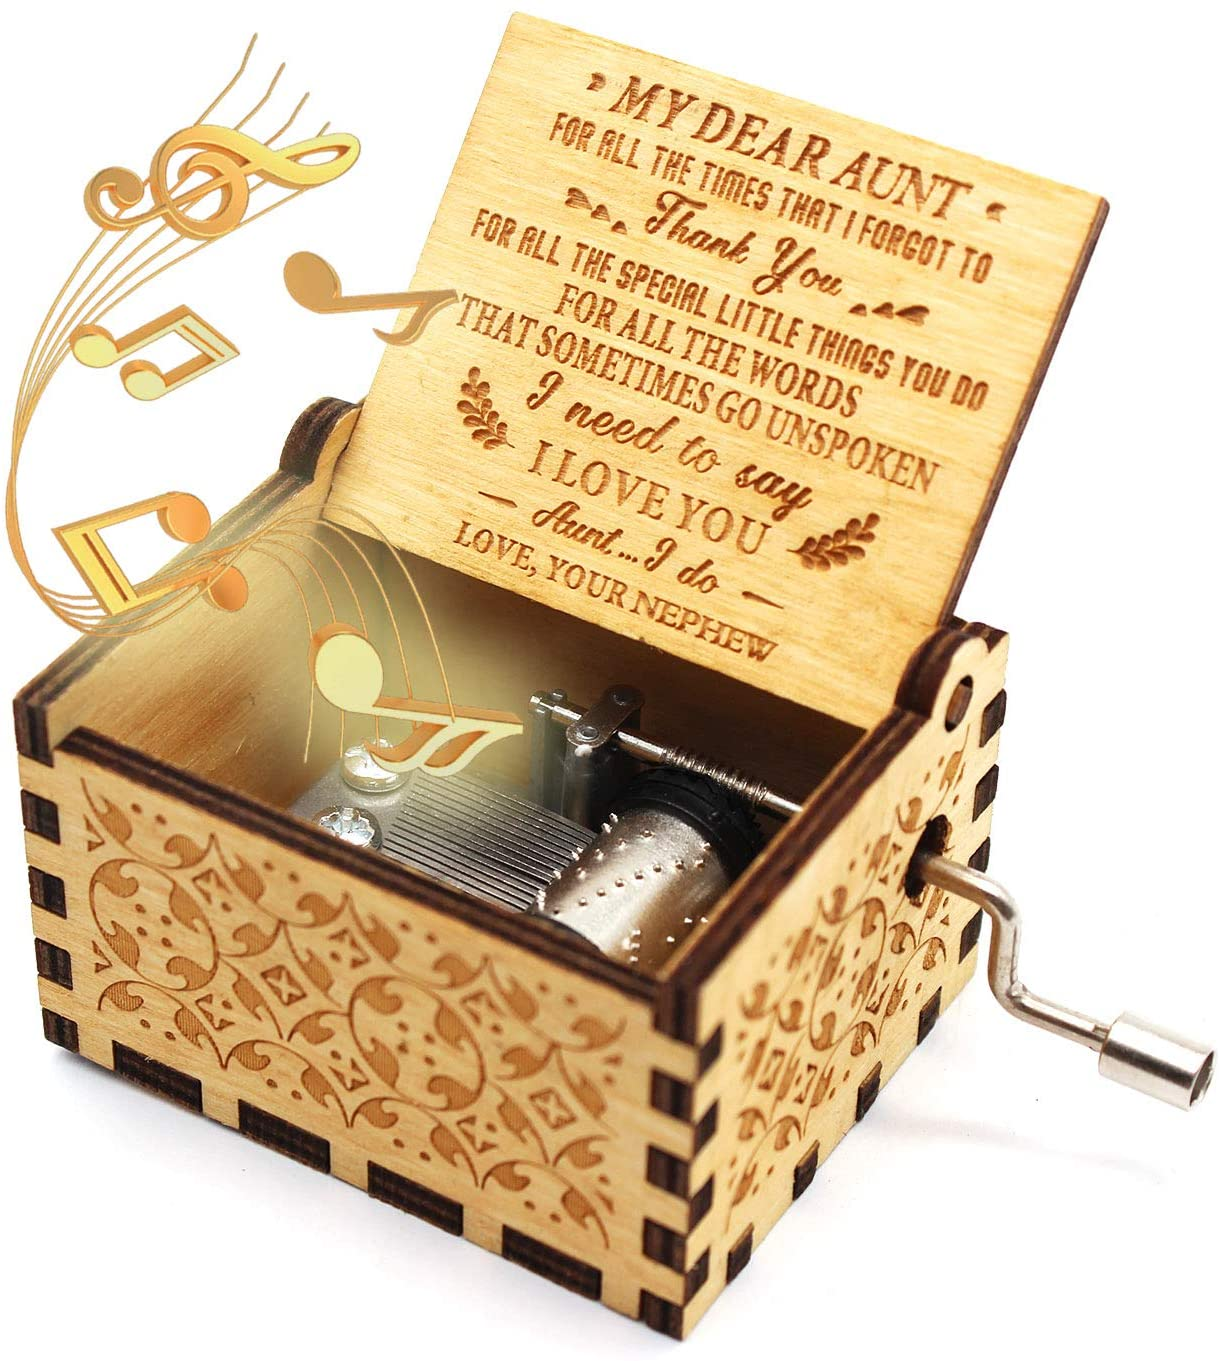 ukebobo Wooden Music Box- You are My Sunshine Music Box, from Nephew to Aunt, Unique Music Box for Aunt - 1 Set